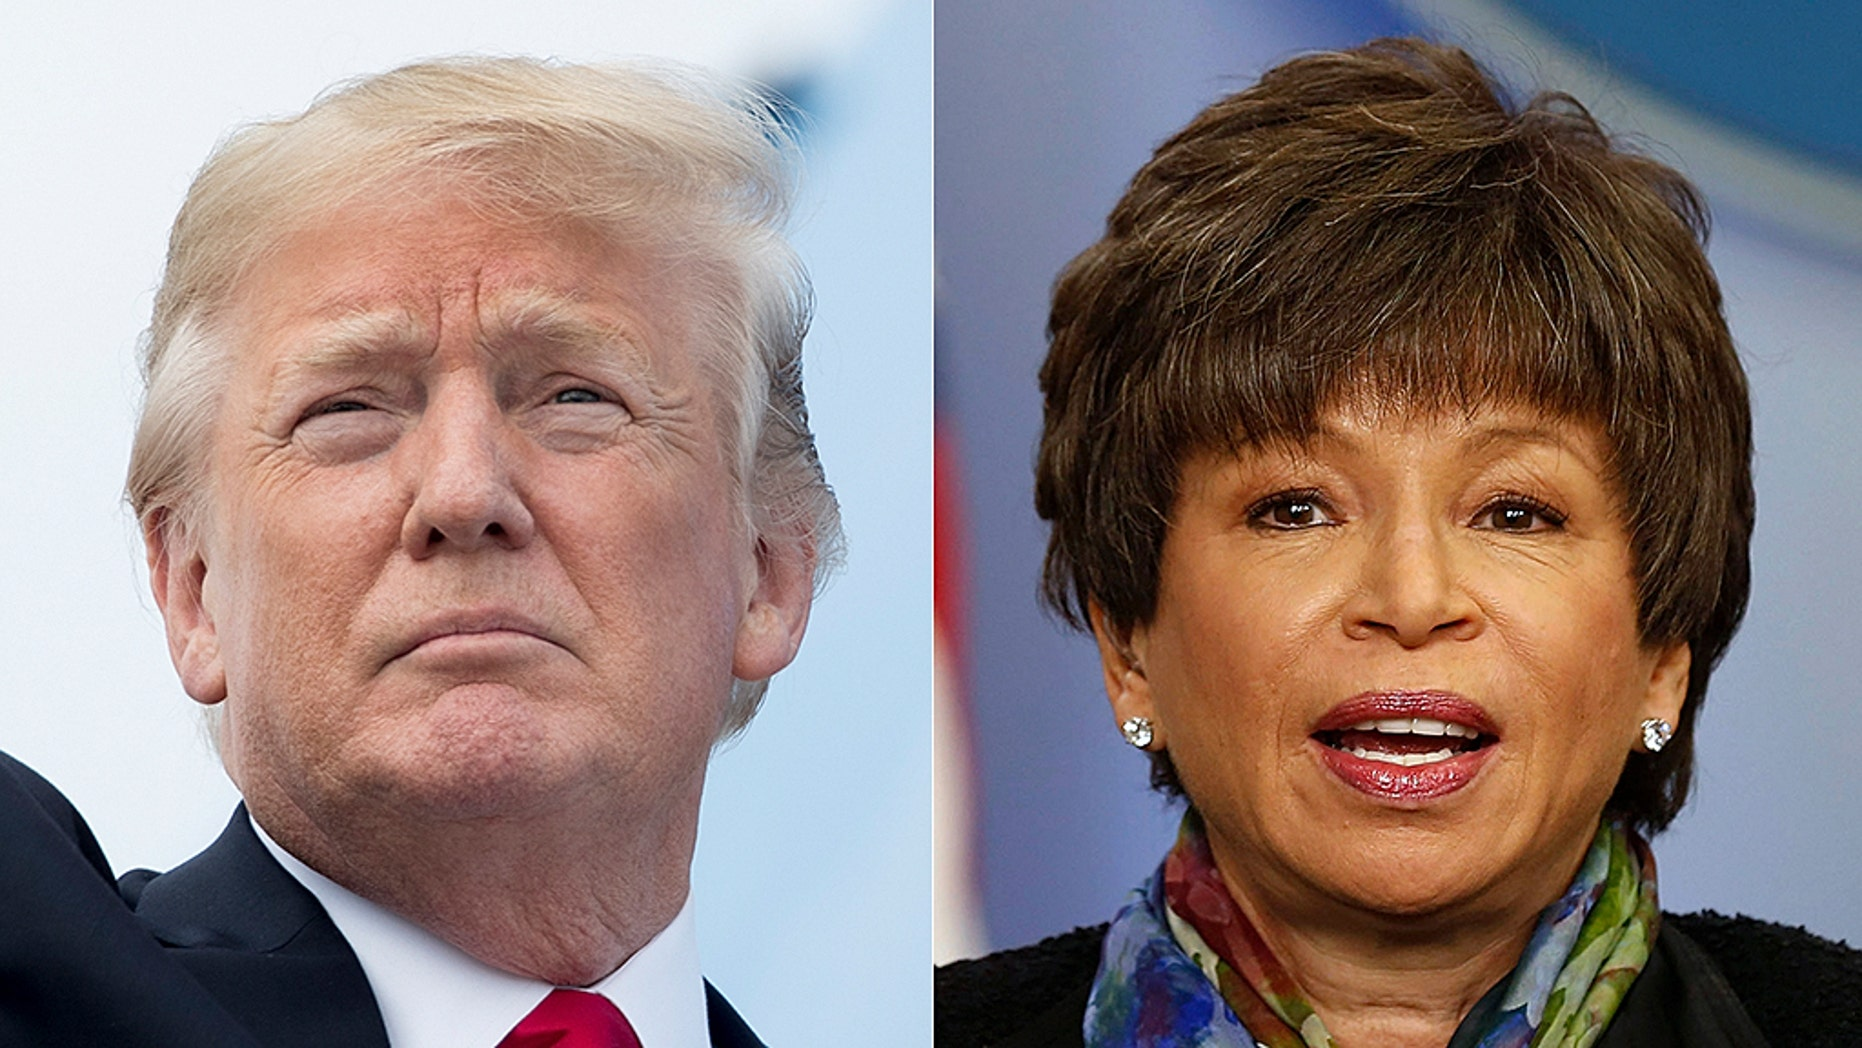 Former Obama adviser Valerie Jarrett suggests President Trump's 'tone' is partly to blame for Roseanne's racist tweet.